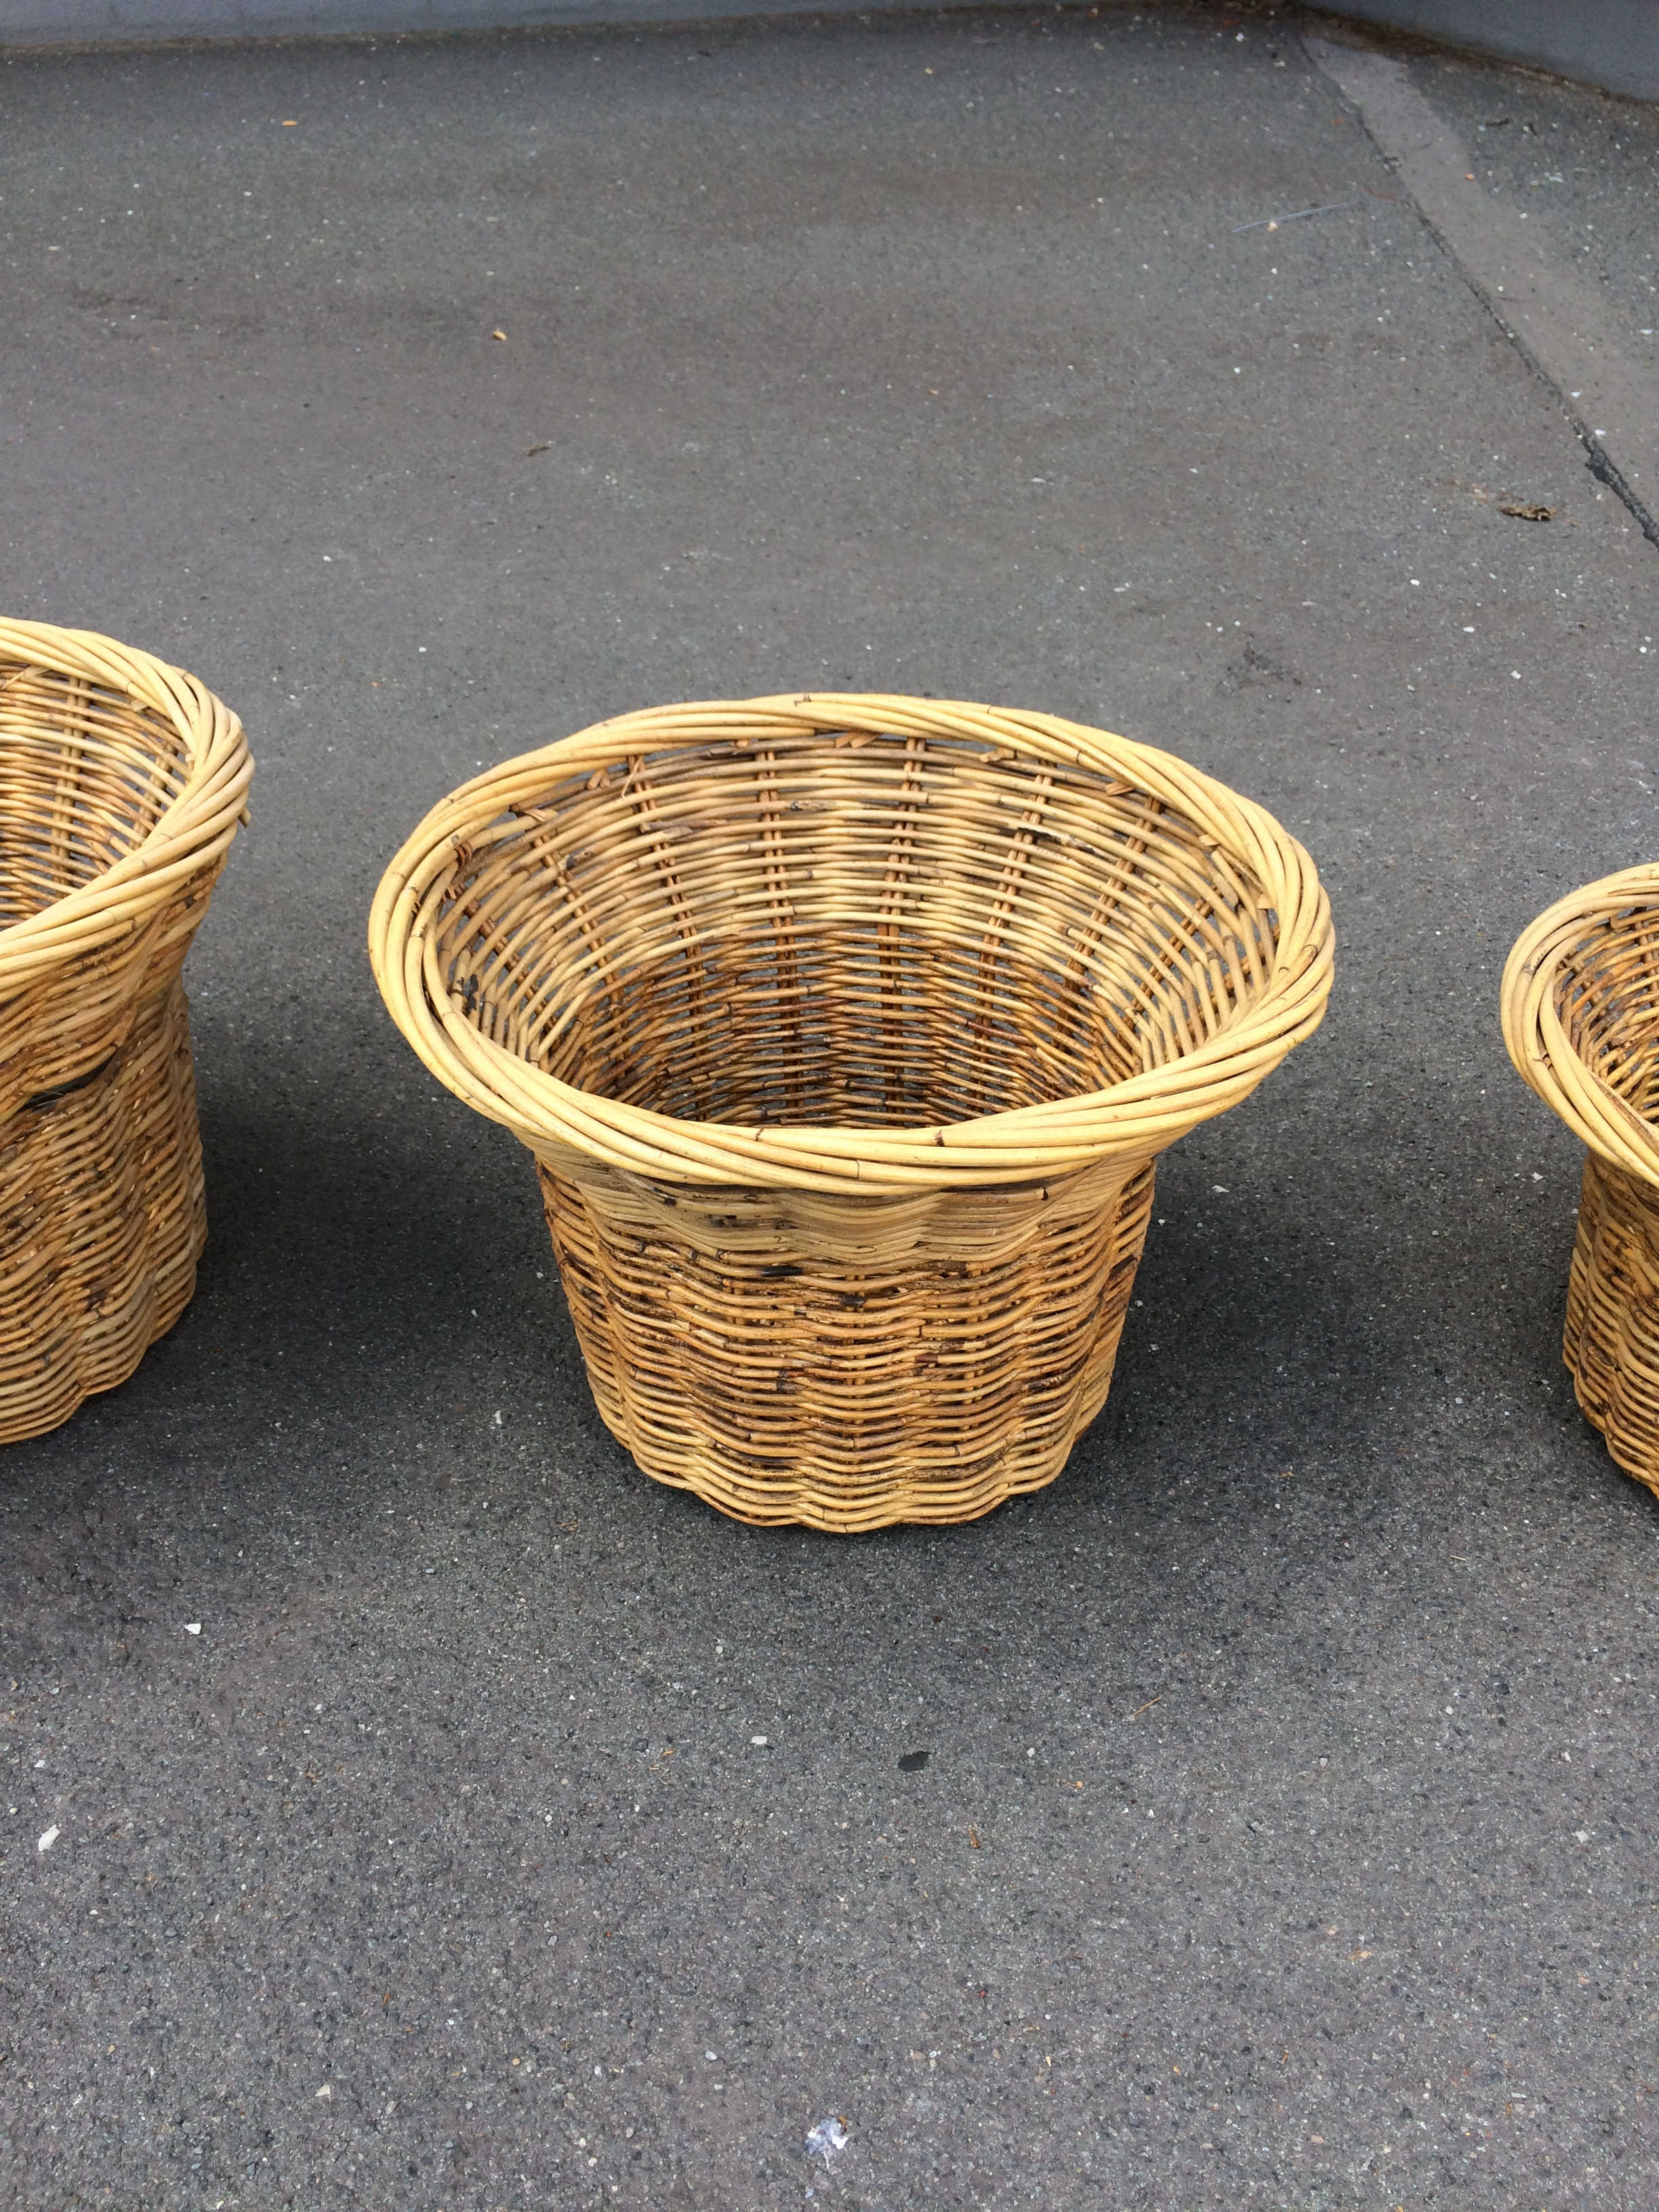 Basketry & Chair Caning Geflochtene Halbkörbe Home Arts & Crafts